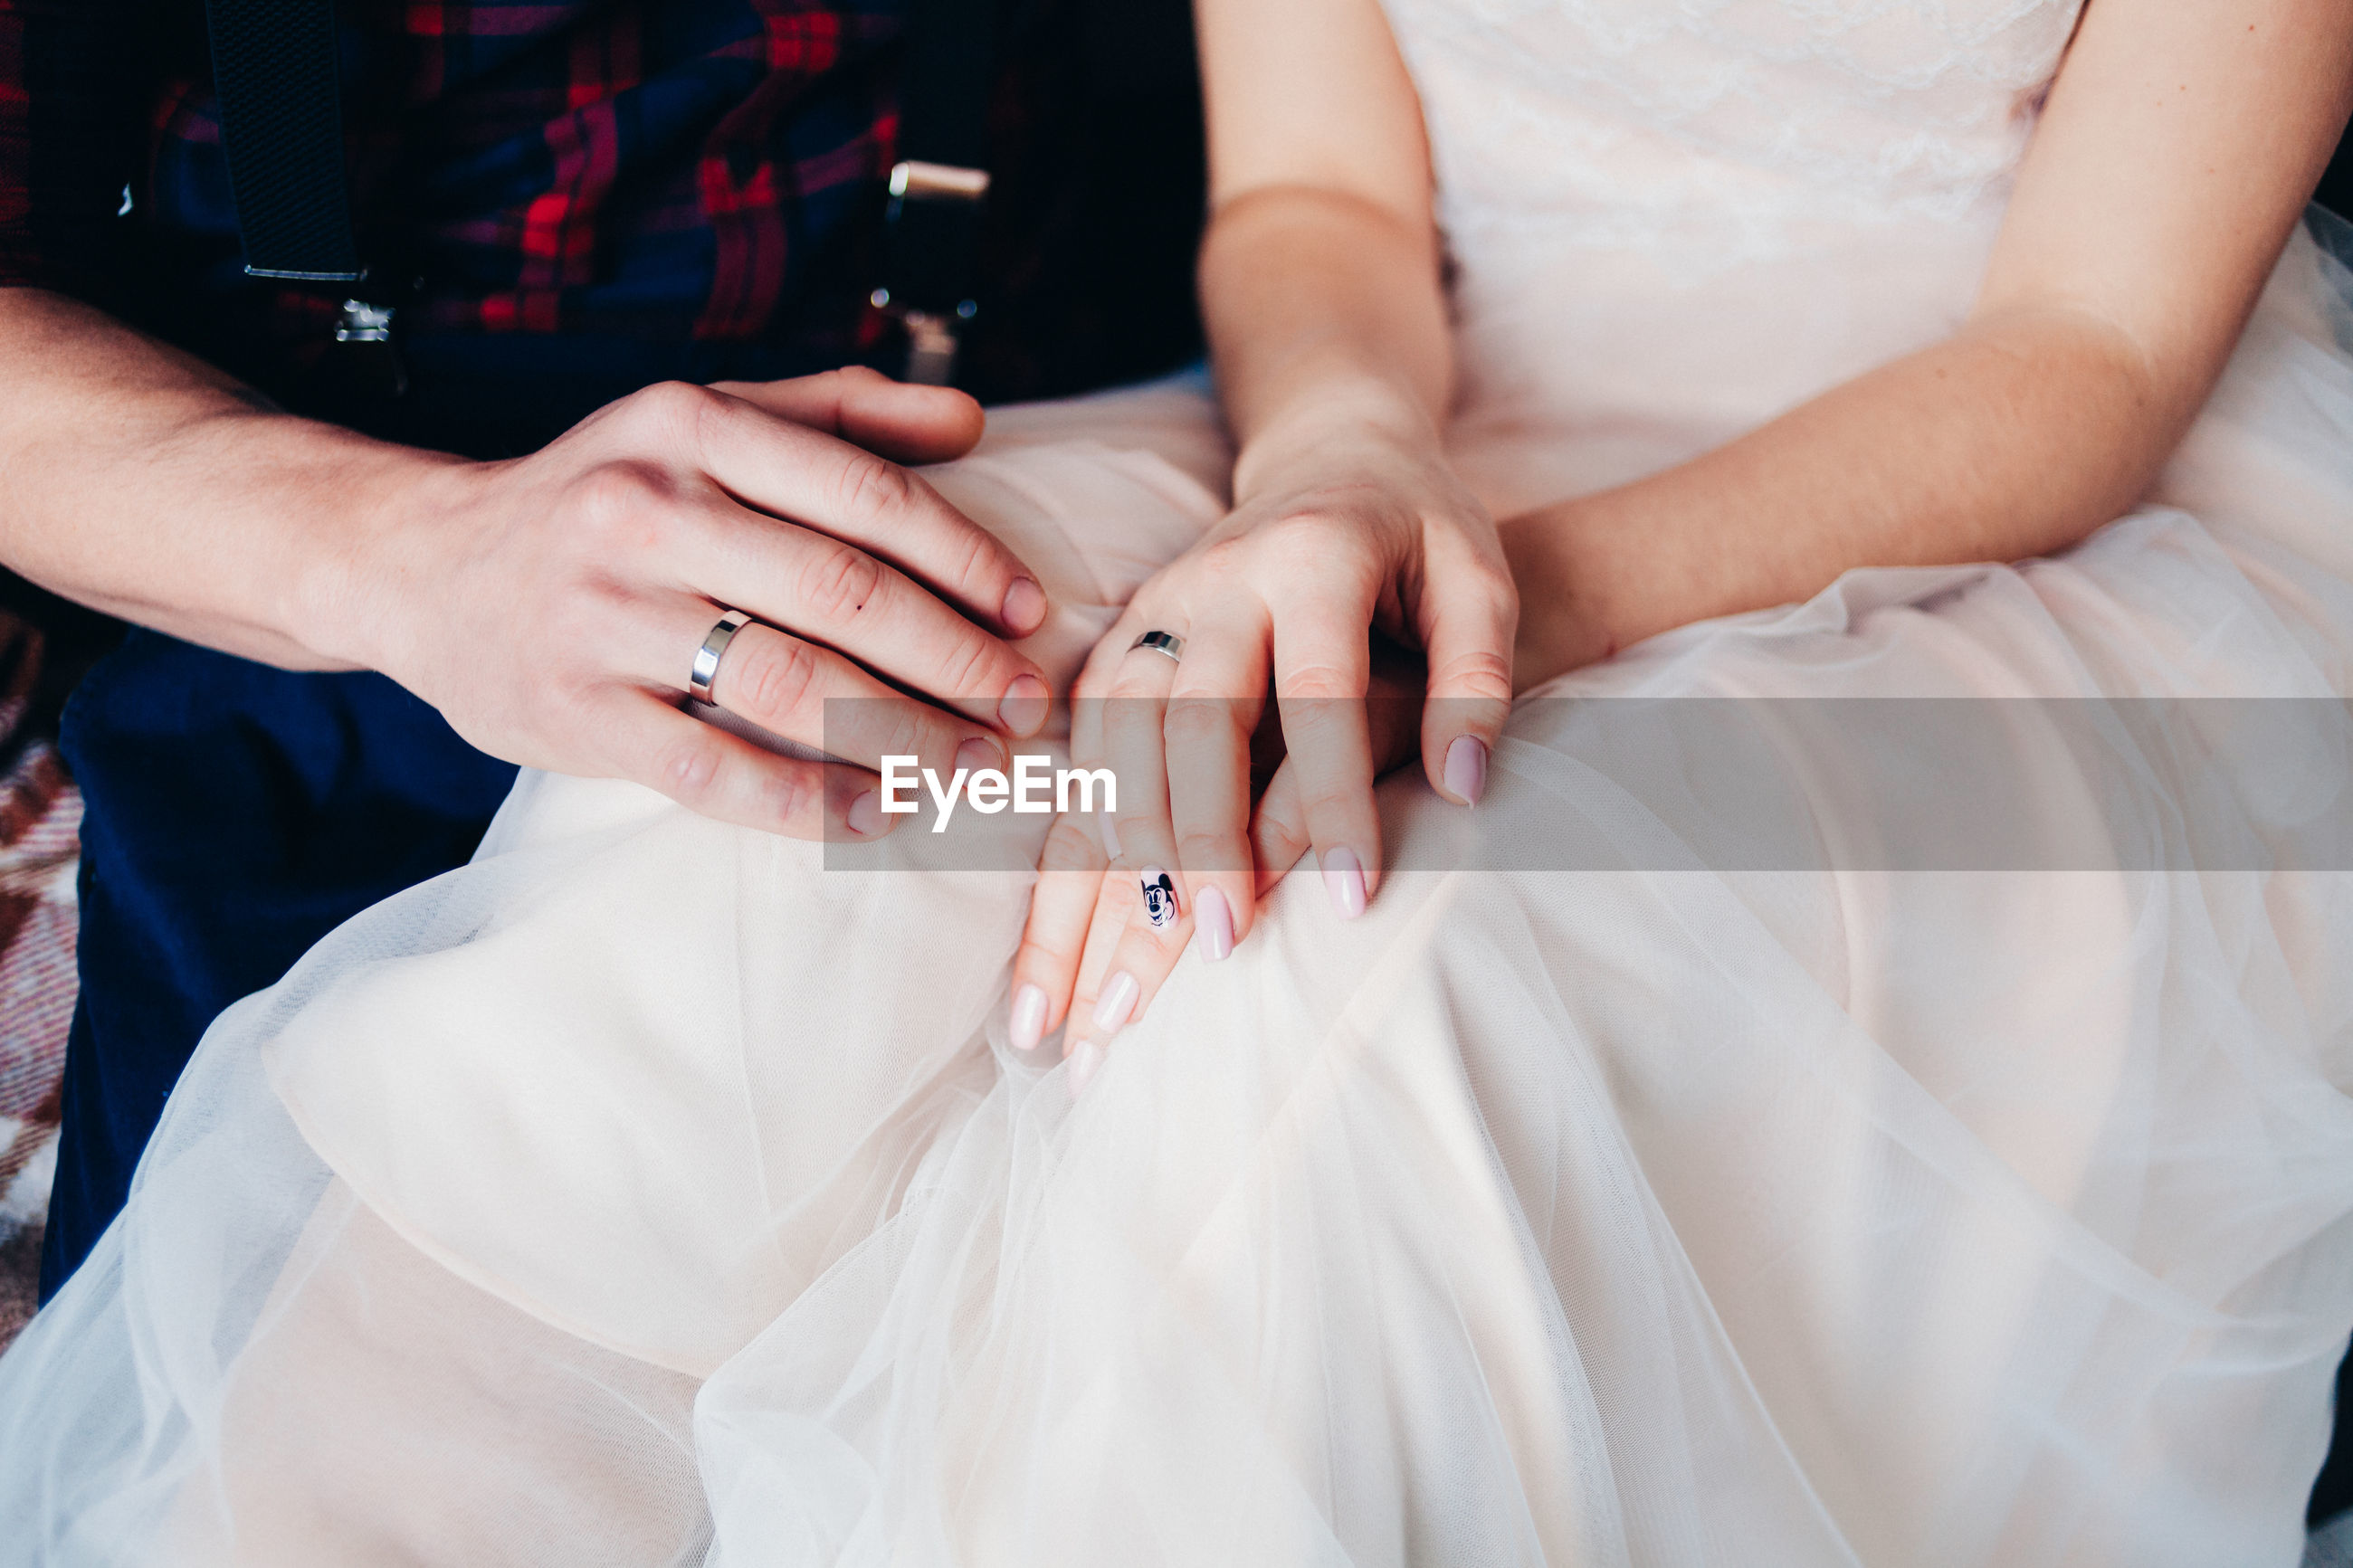 Midsection of bride and groom in wedding dress sitting on bed